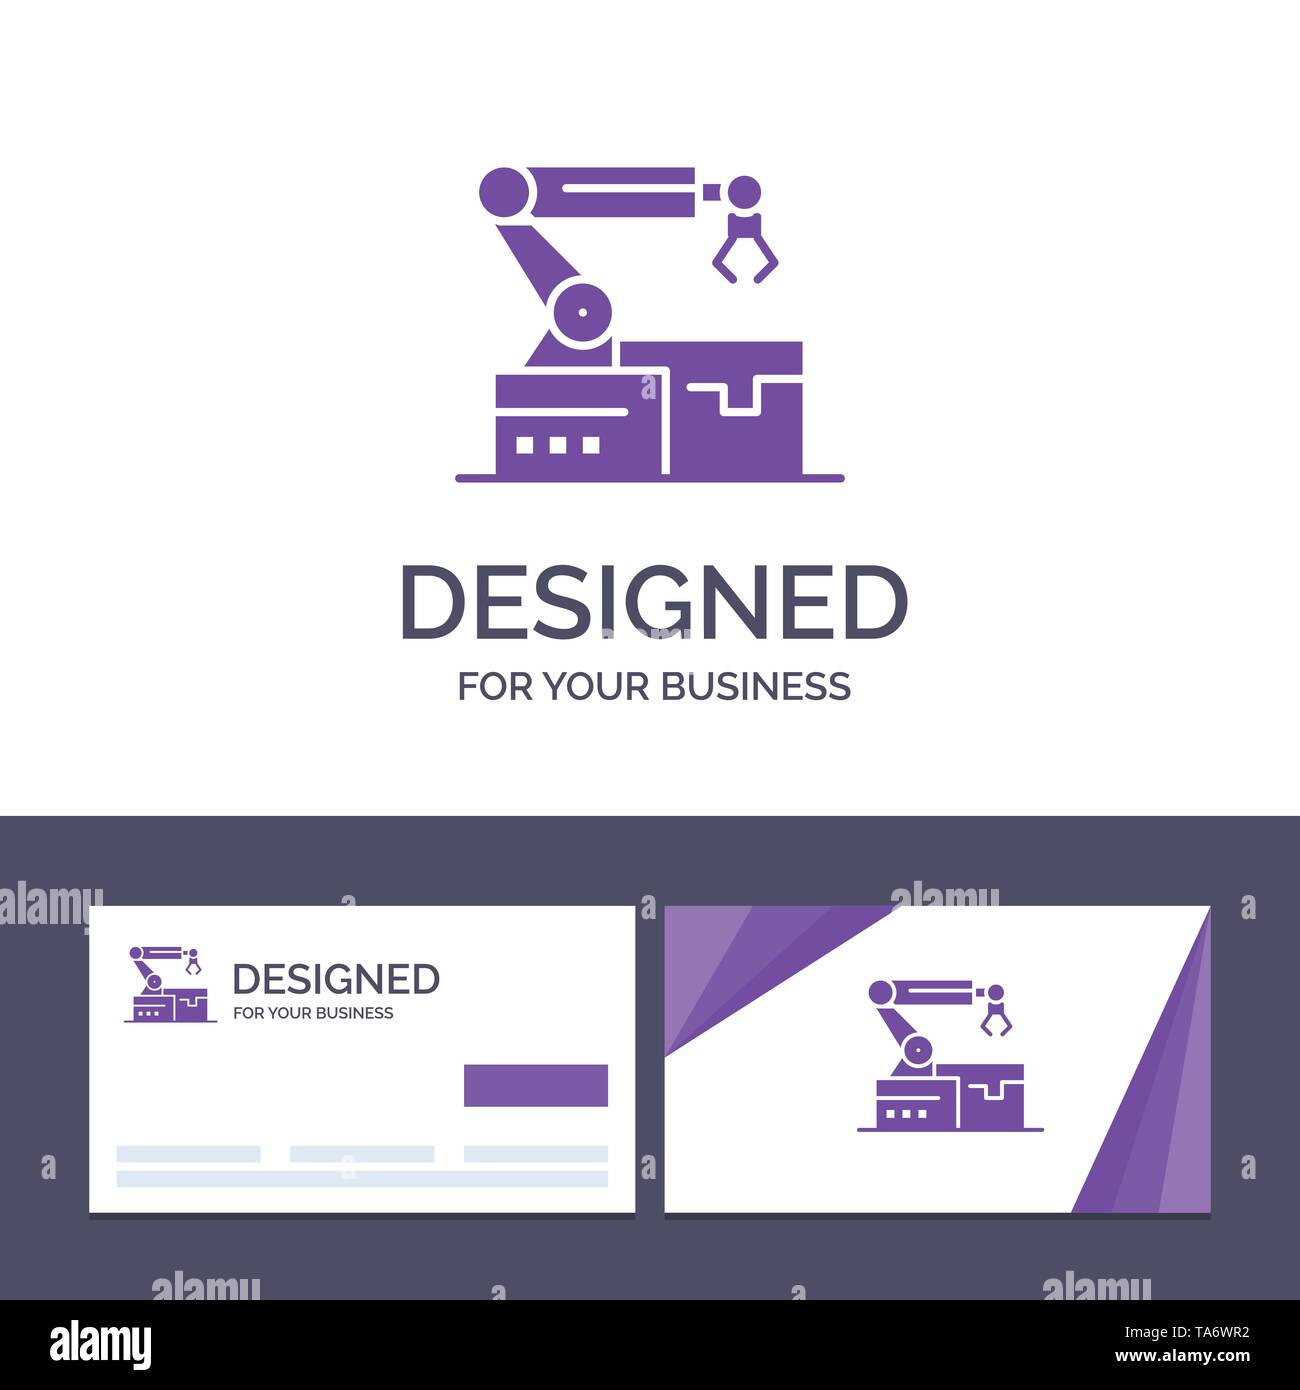 Creative Business Card and Logo template Automated, Robotic, Arm, Technology Vector Illustration - Stock Image